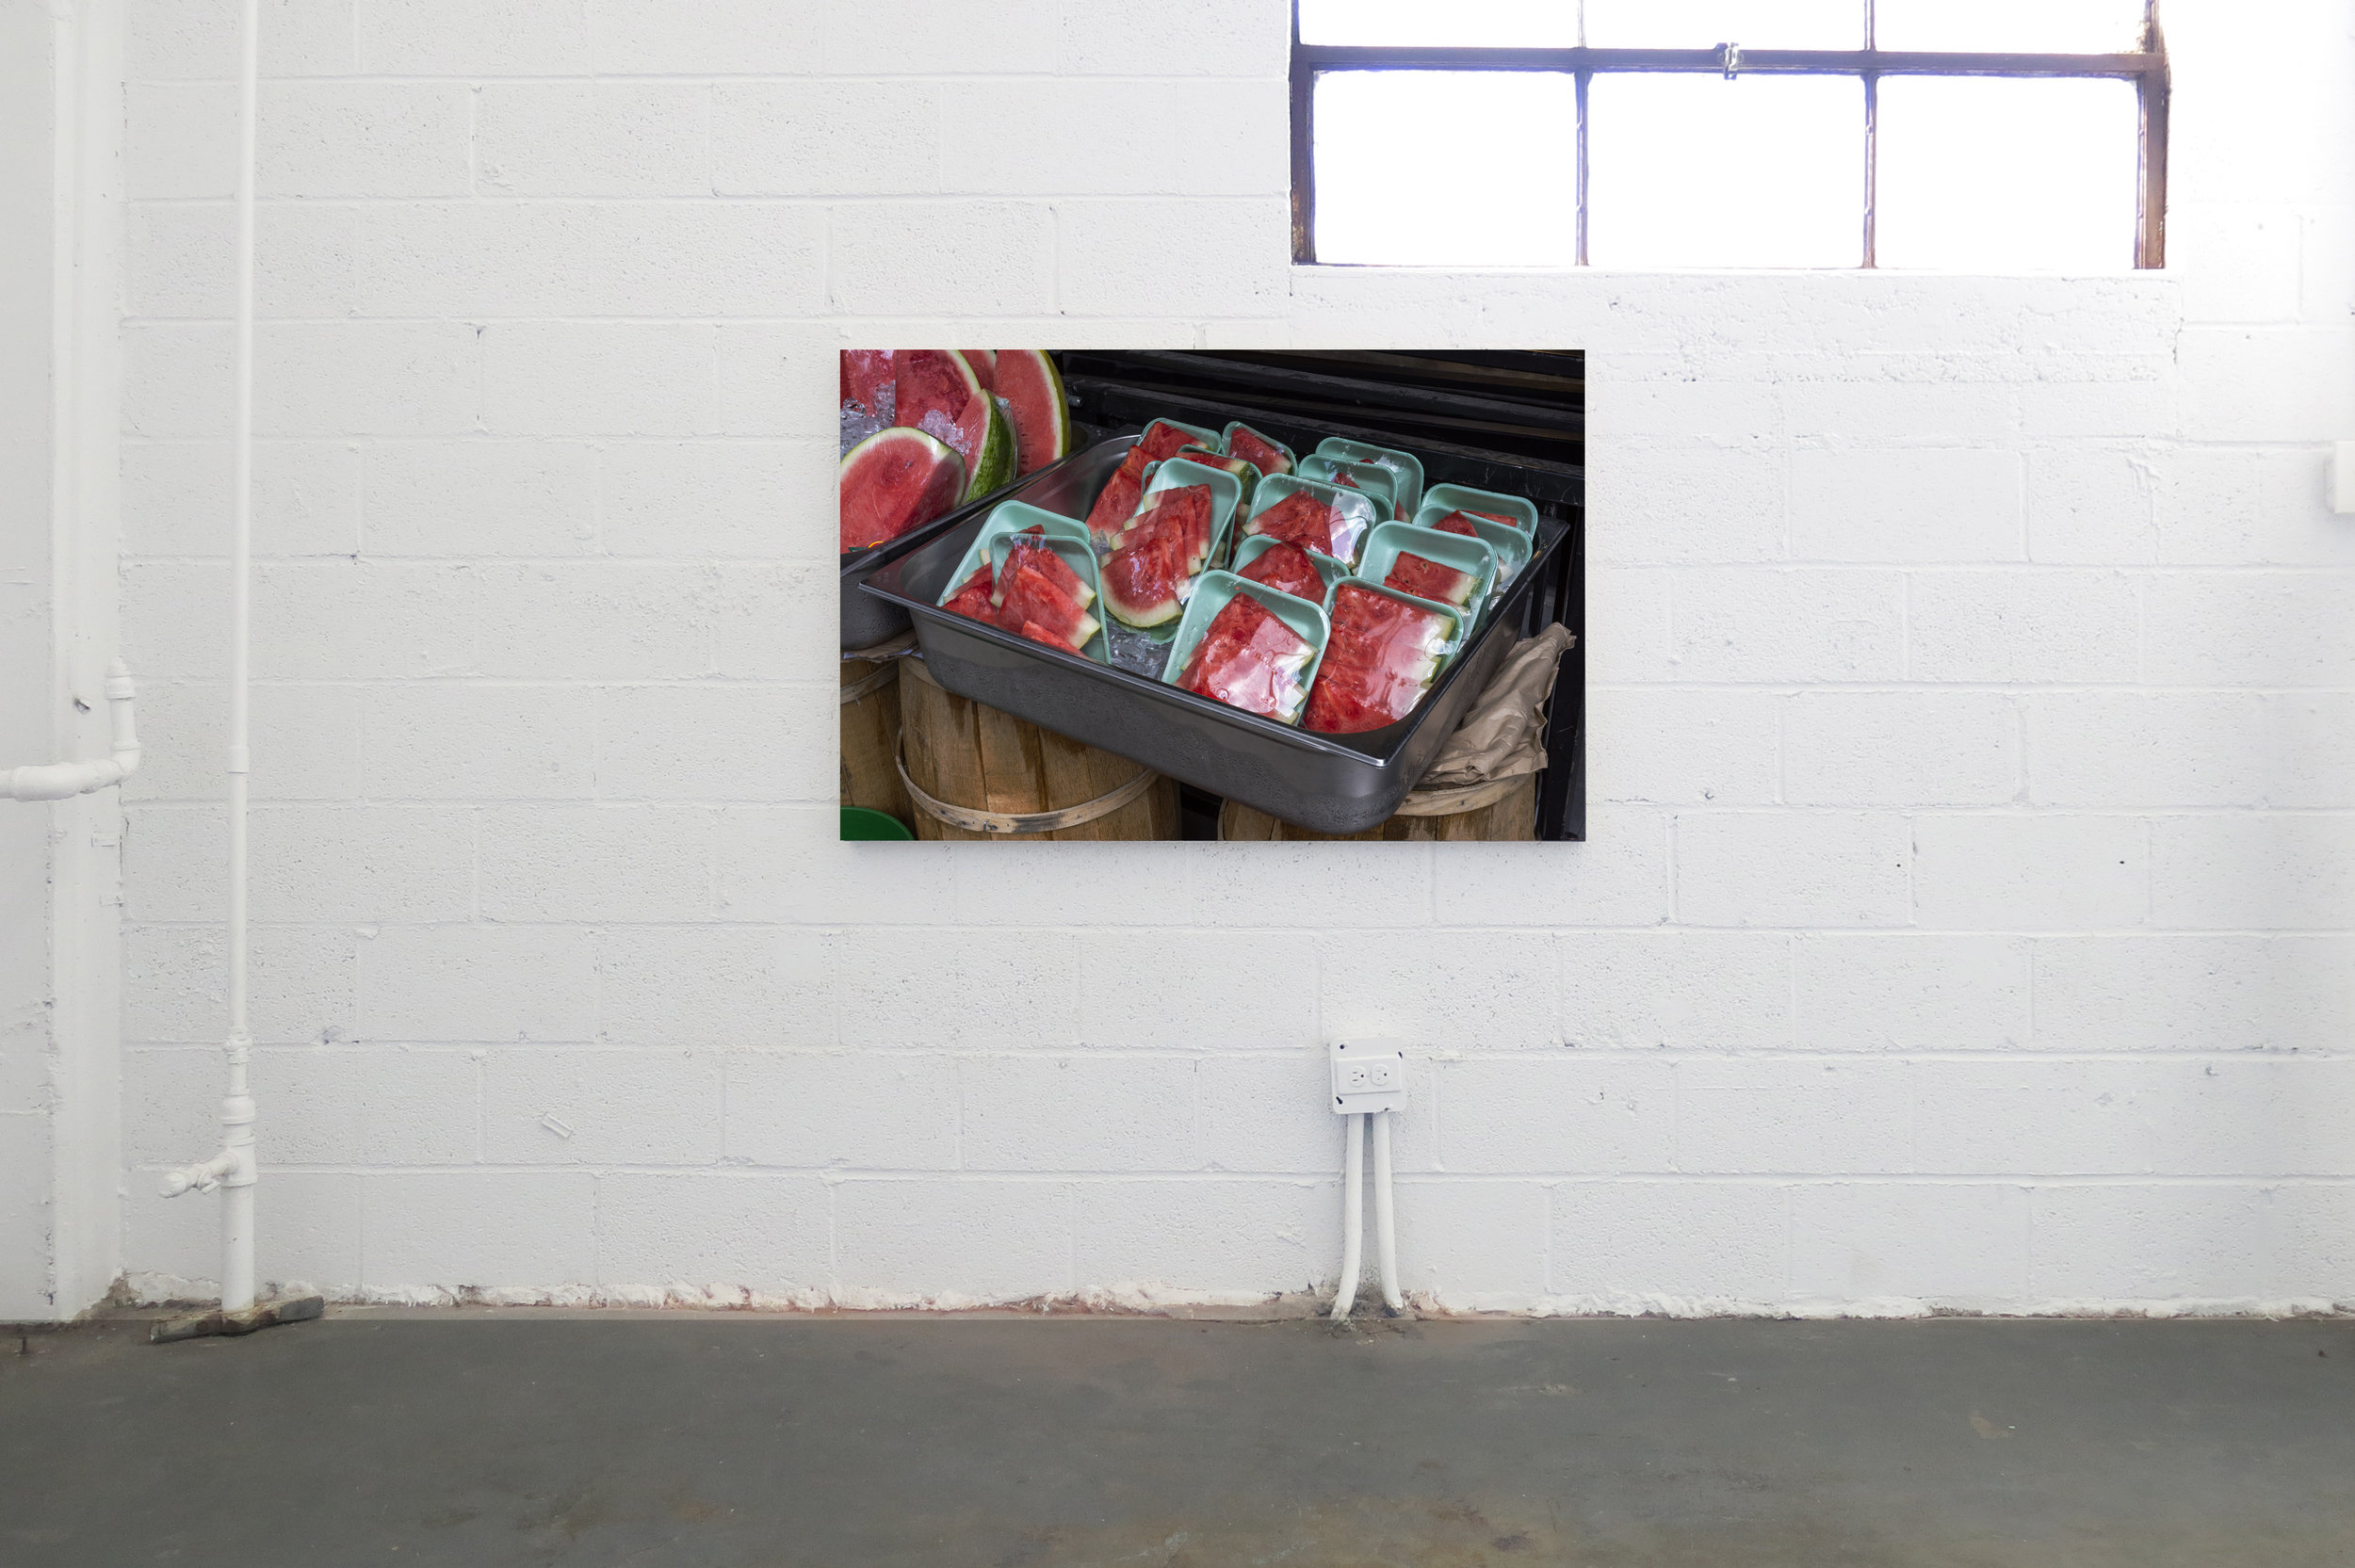 Cameron Crone,  Sliced Watermelon,  2019, Archival pigment print mounted on bass wood panel, 50 x 33 x 2""